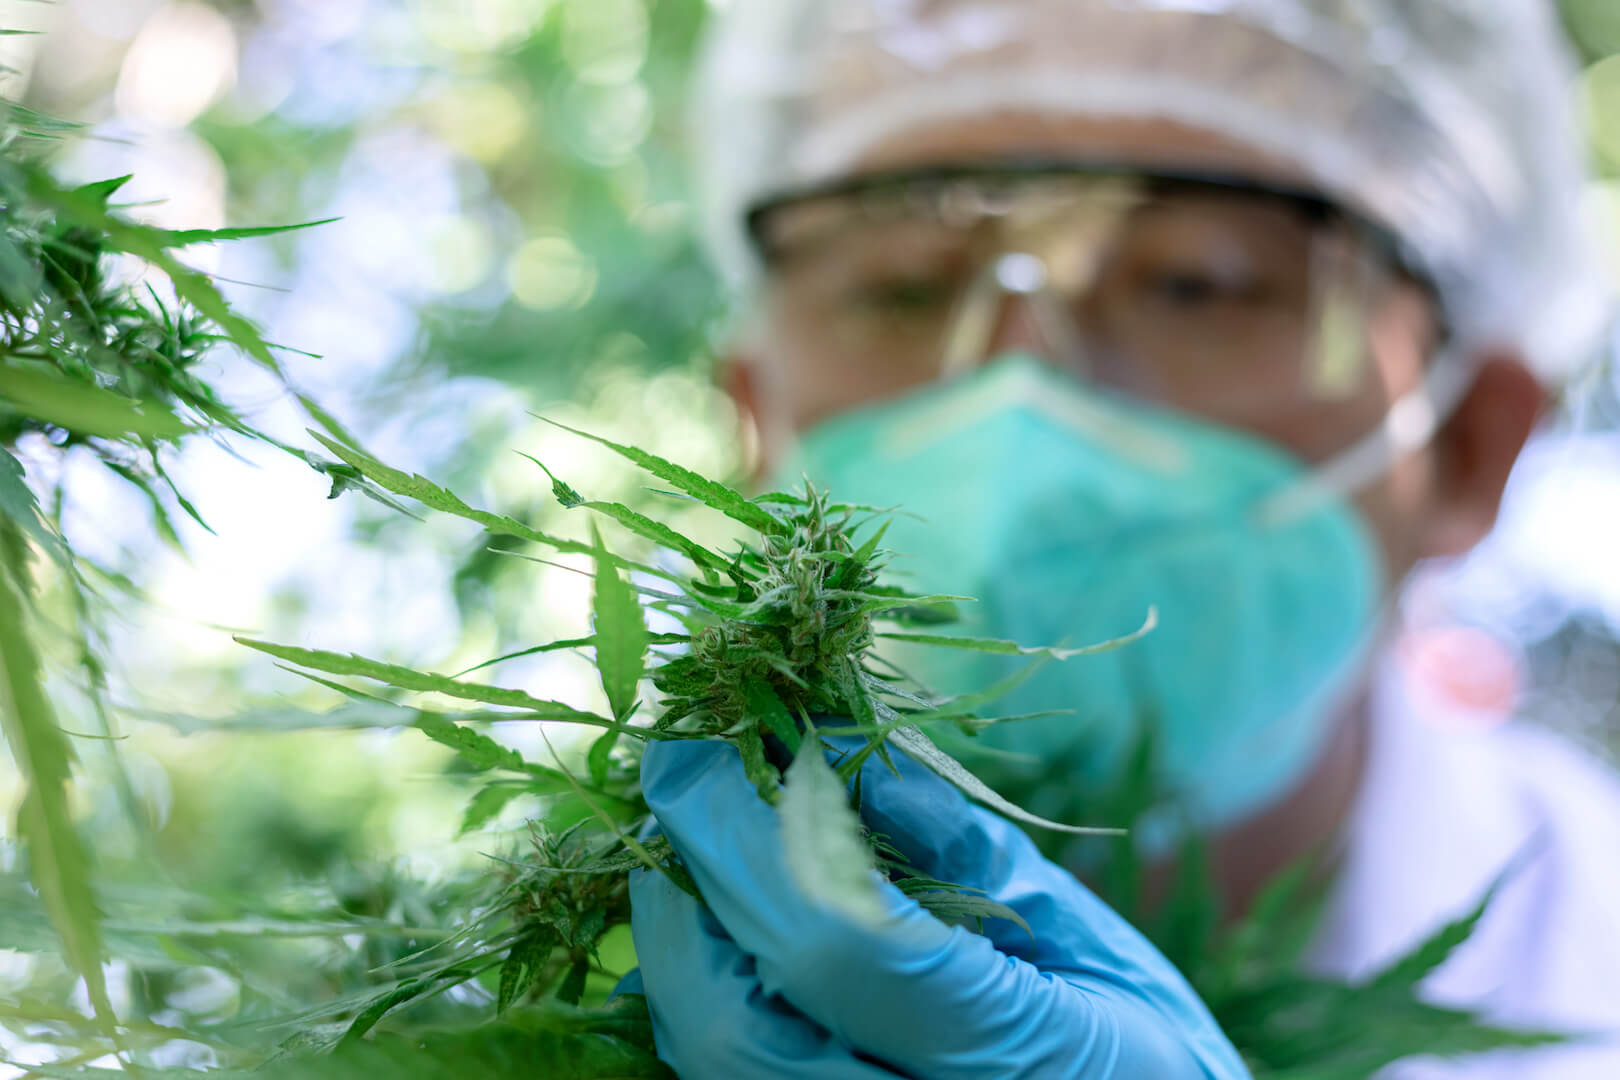 //www.eco-equity.com/wp-content/uploads/2020/11/scientist-examining-cannabis-plant.jpeg